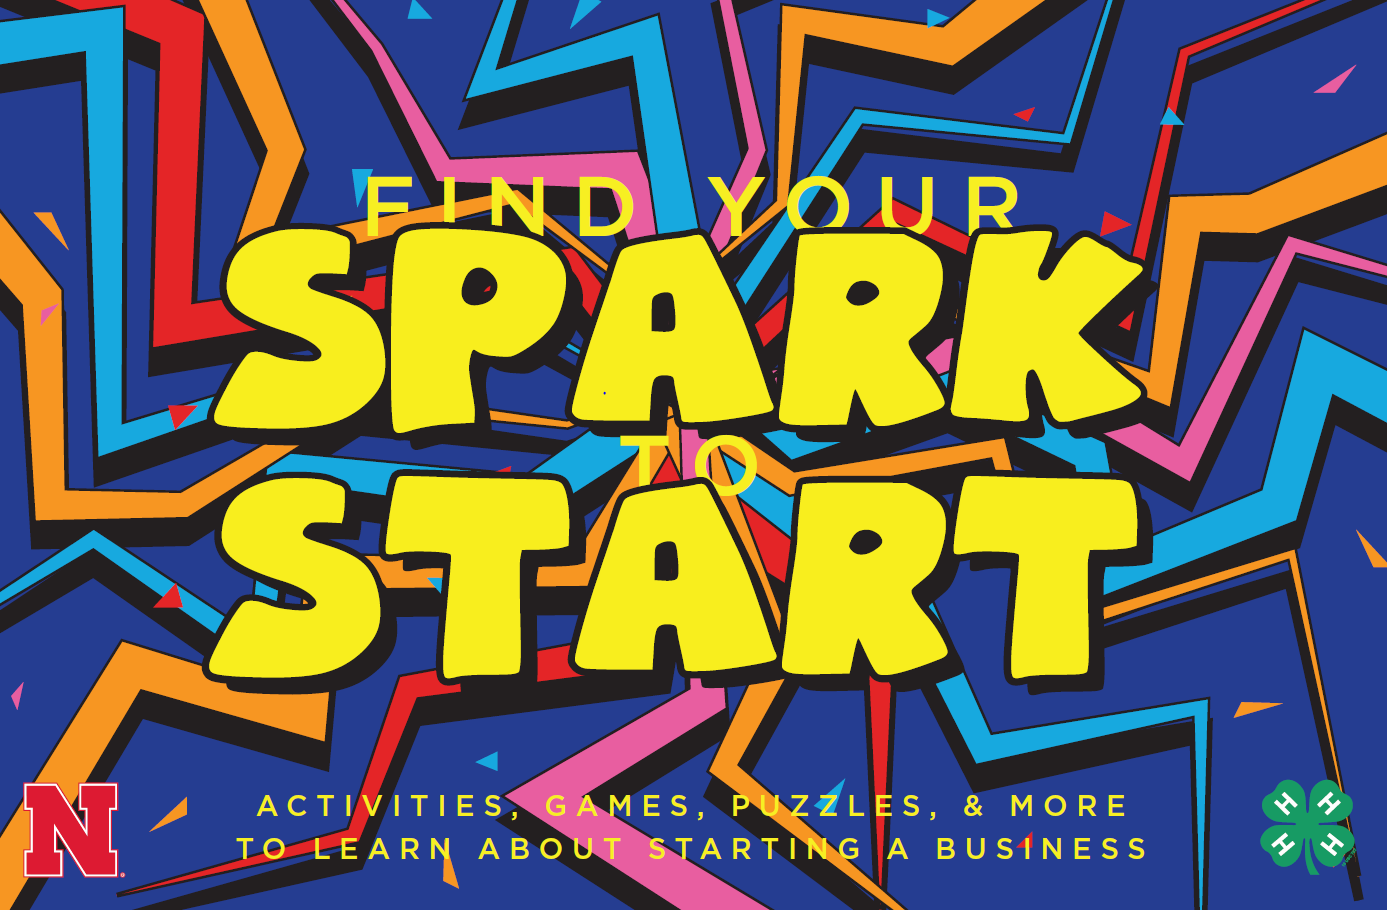 Find Your Spark to Start